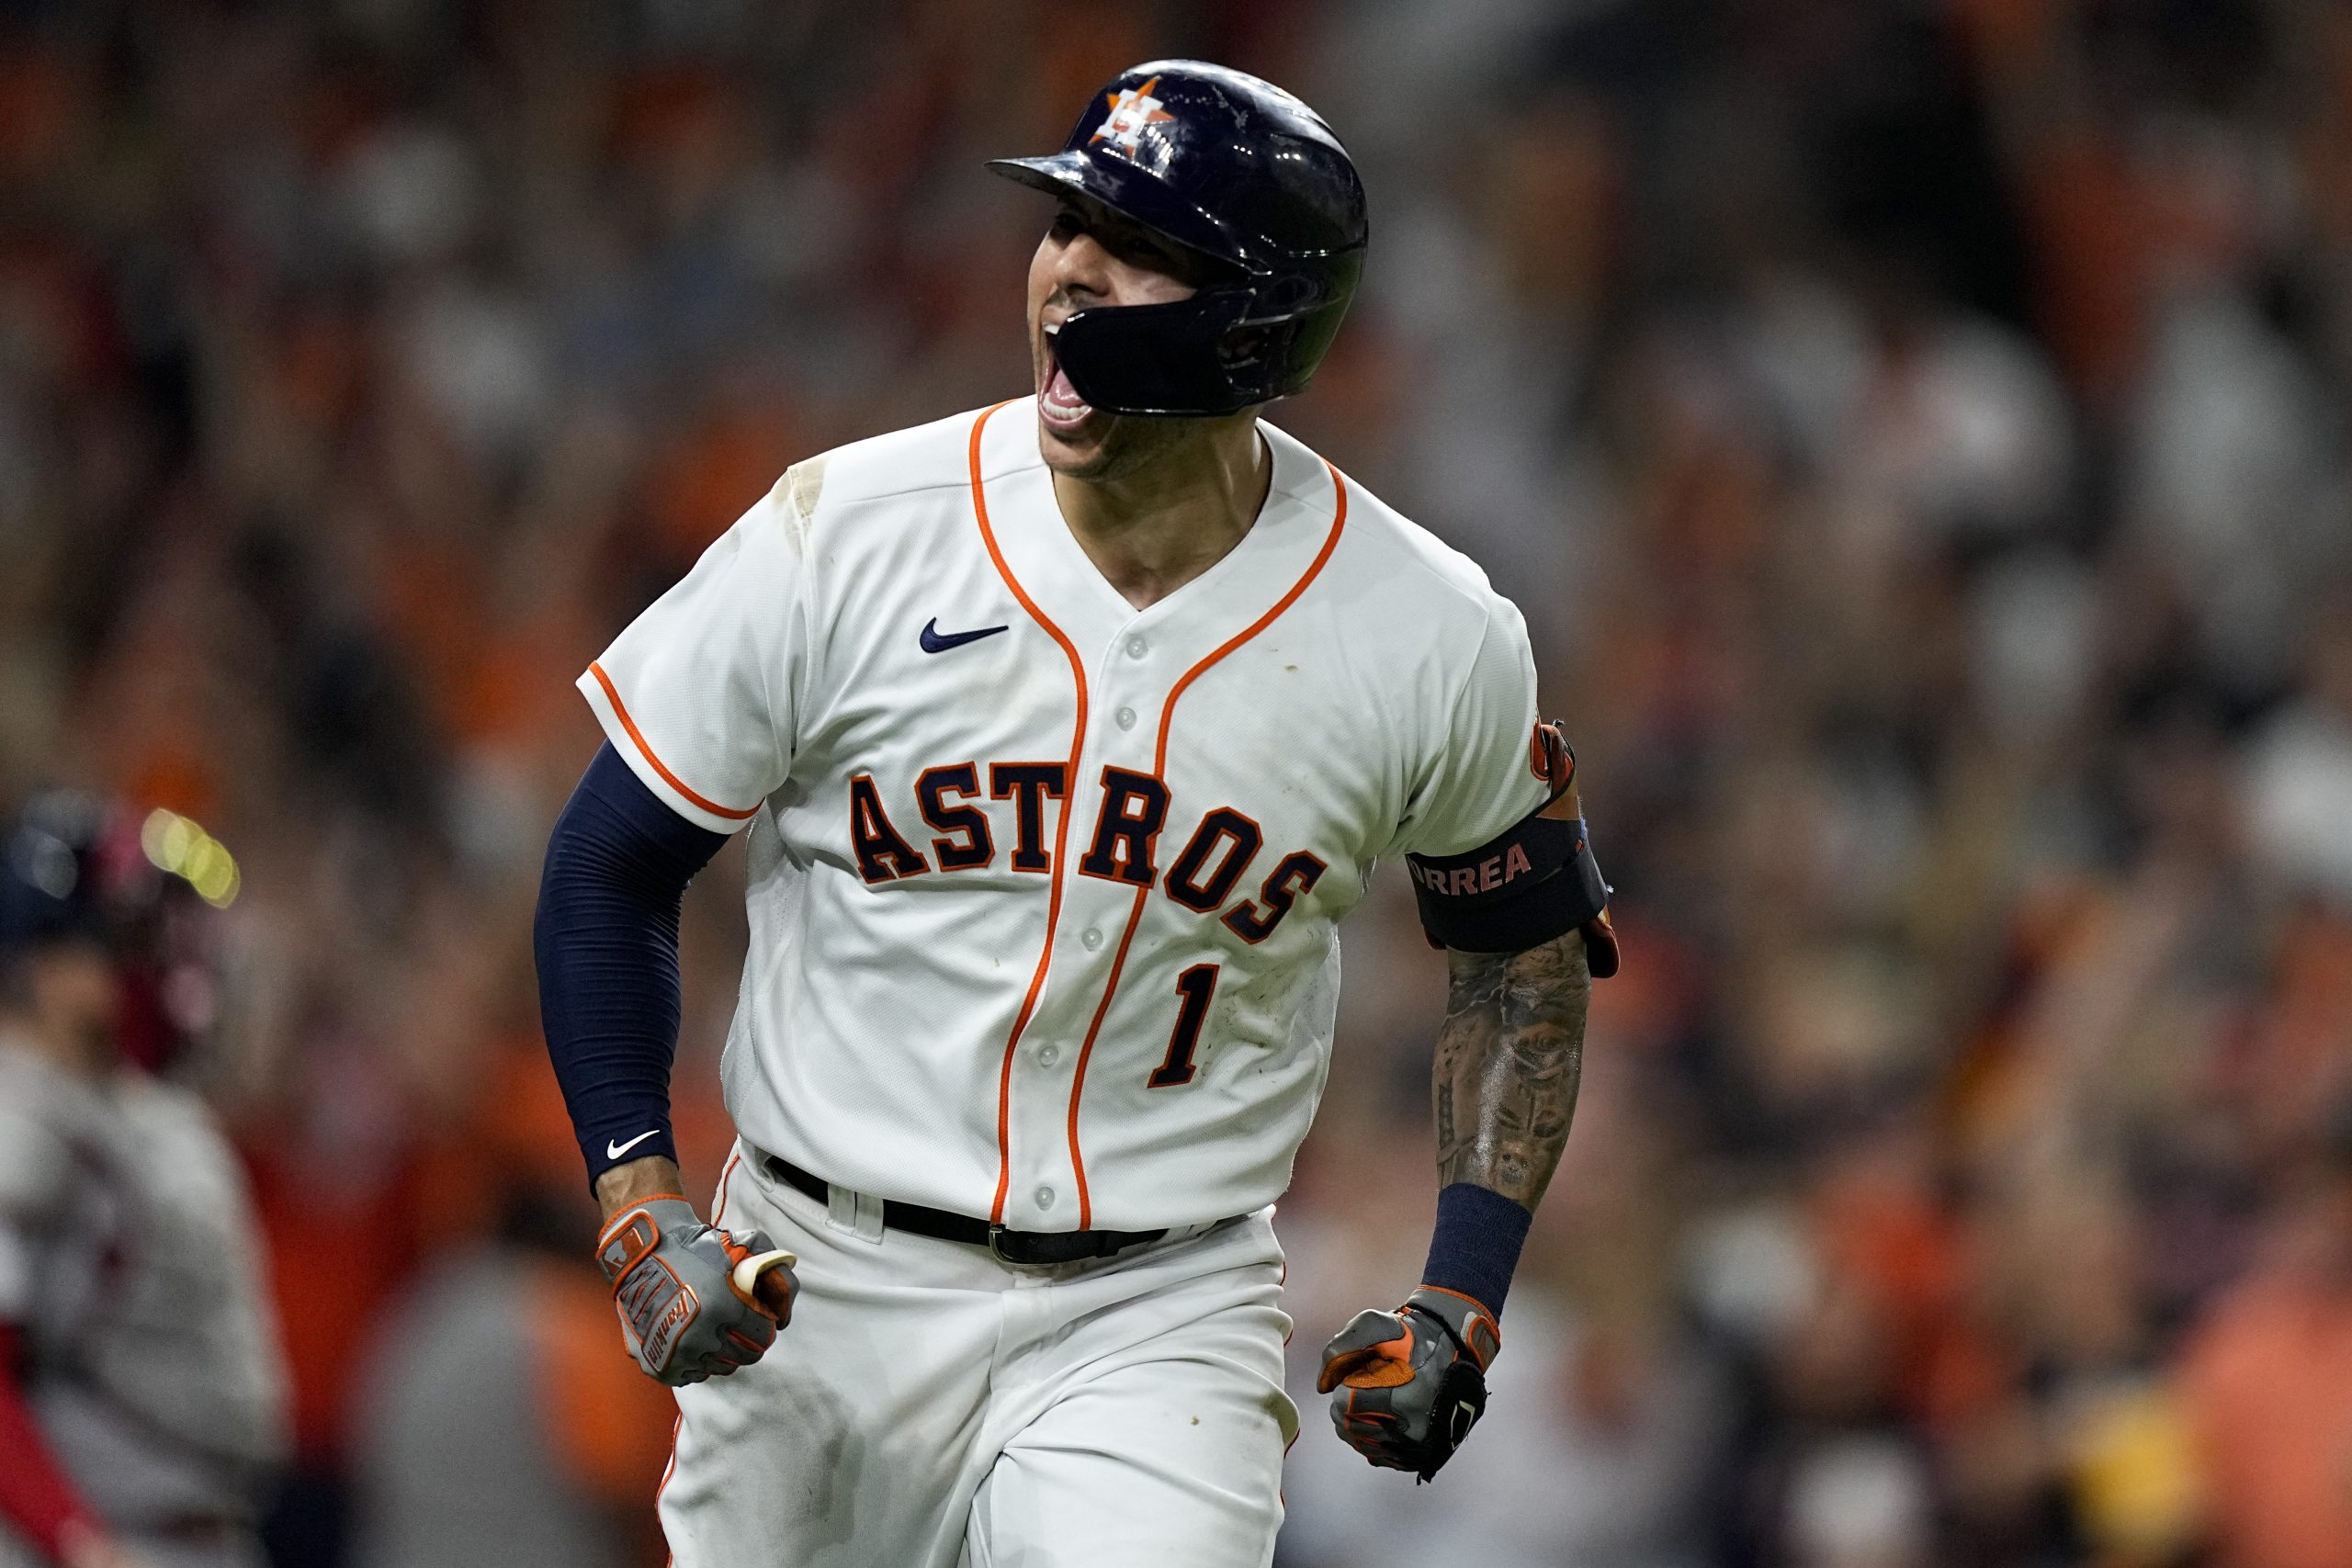 Correa's time: Late HR helps Astros top Bosox in ALCS opener 3